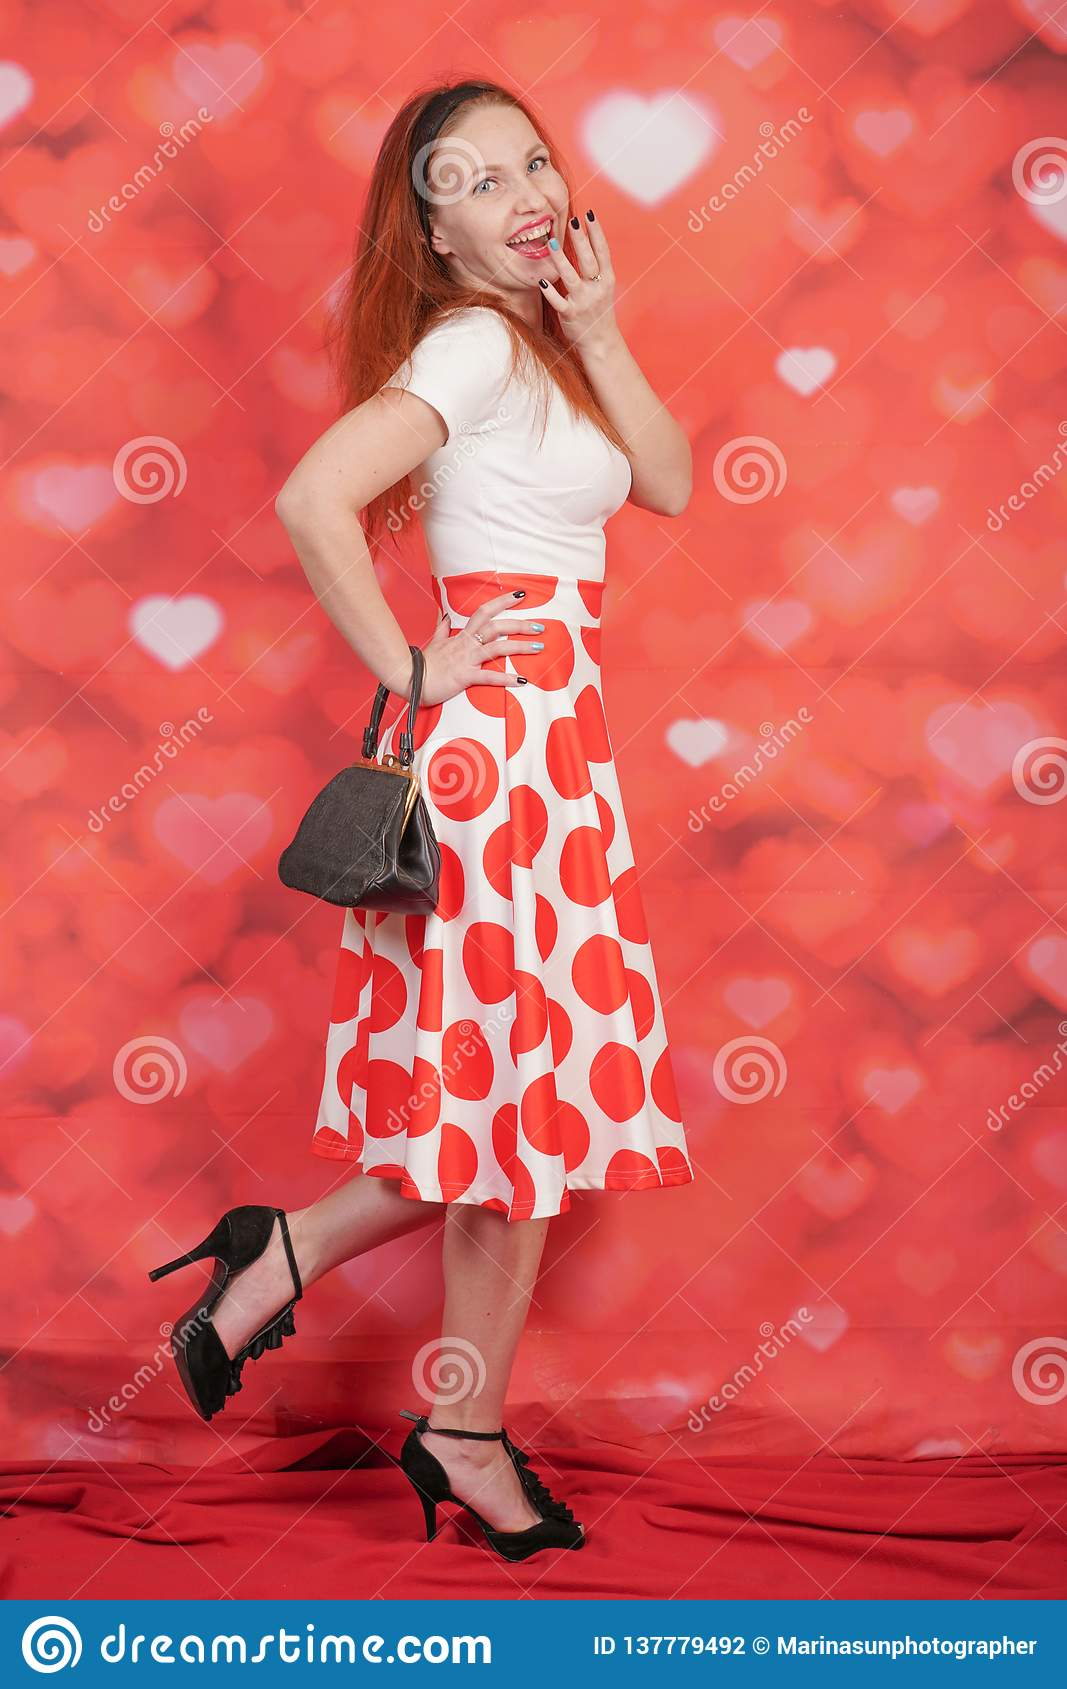 Pretty stylish pin up girl in white shirt and red polka dot vintage skirt standing on red hearts background